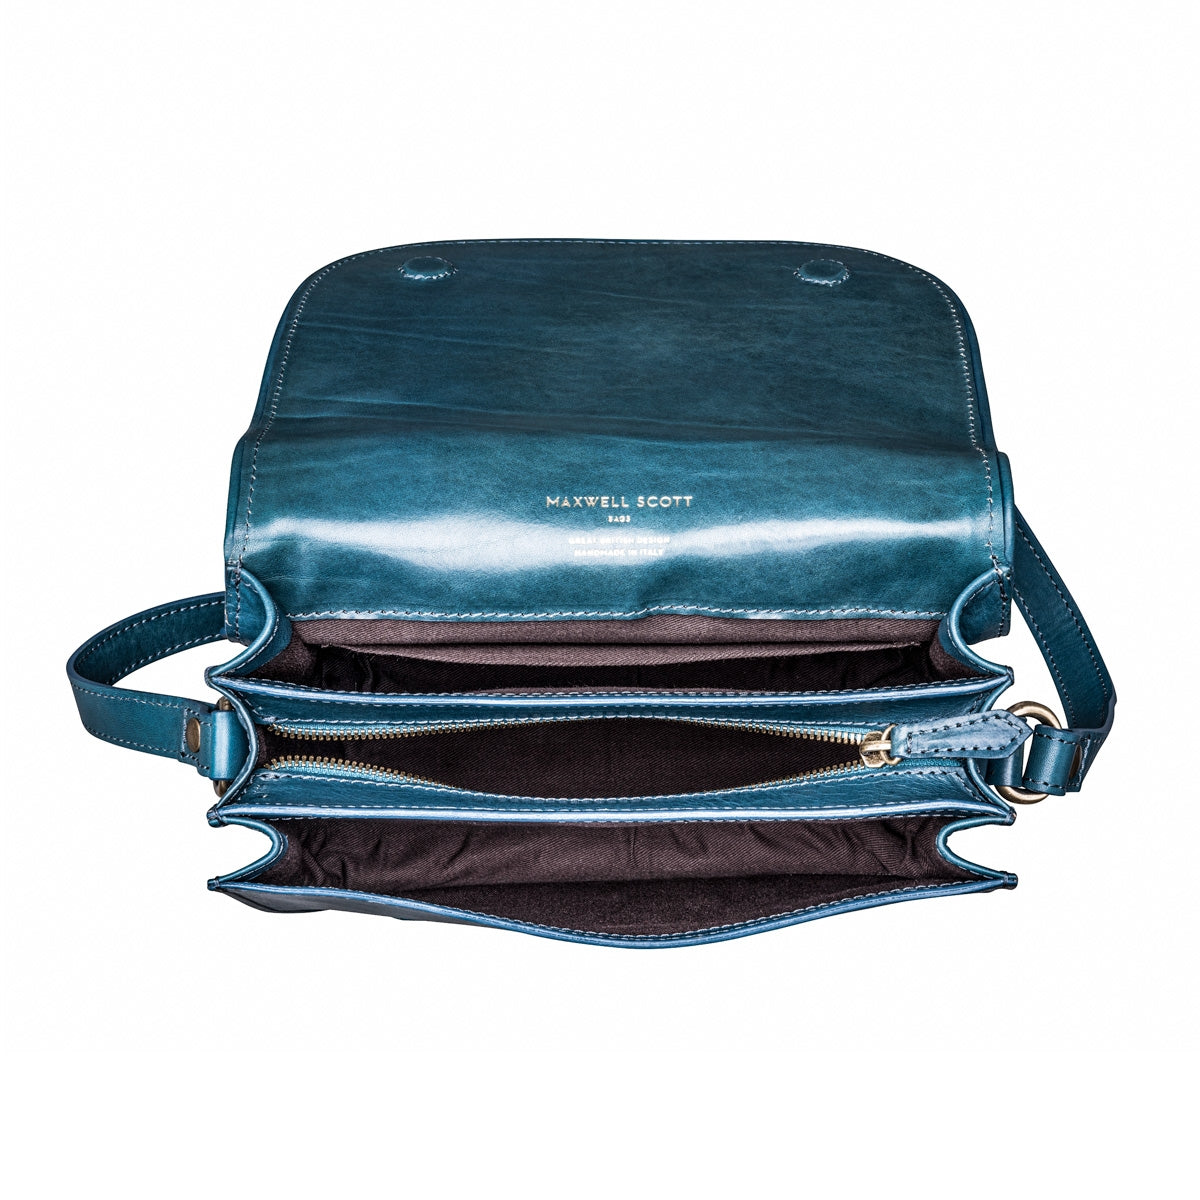 Image 6 of the 'MedollaM' Petrol Leather Women's Saddle Bag